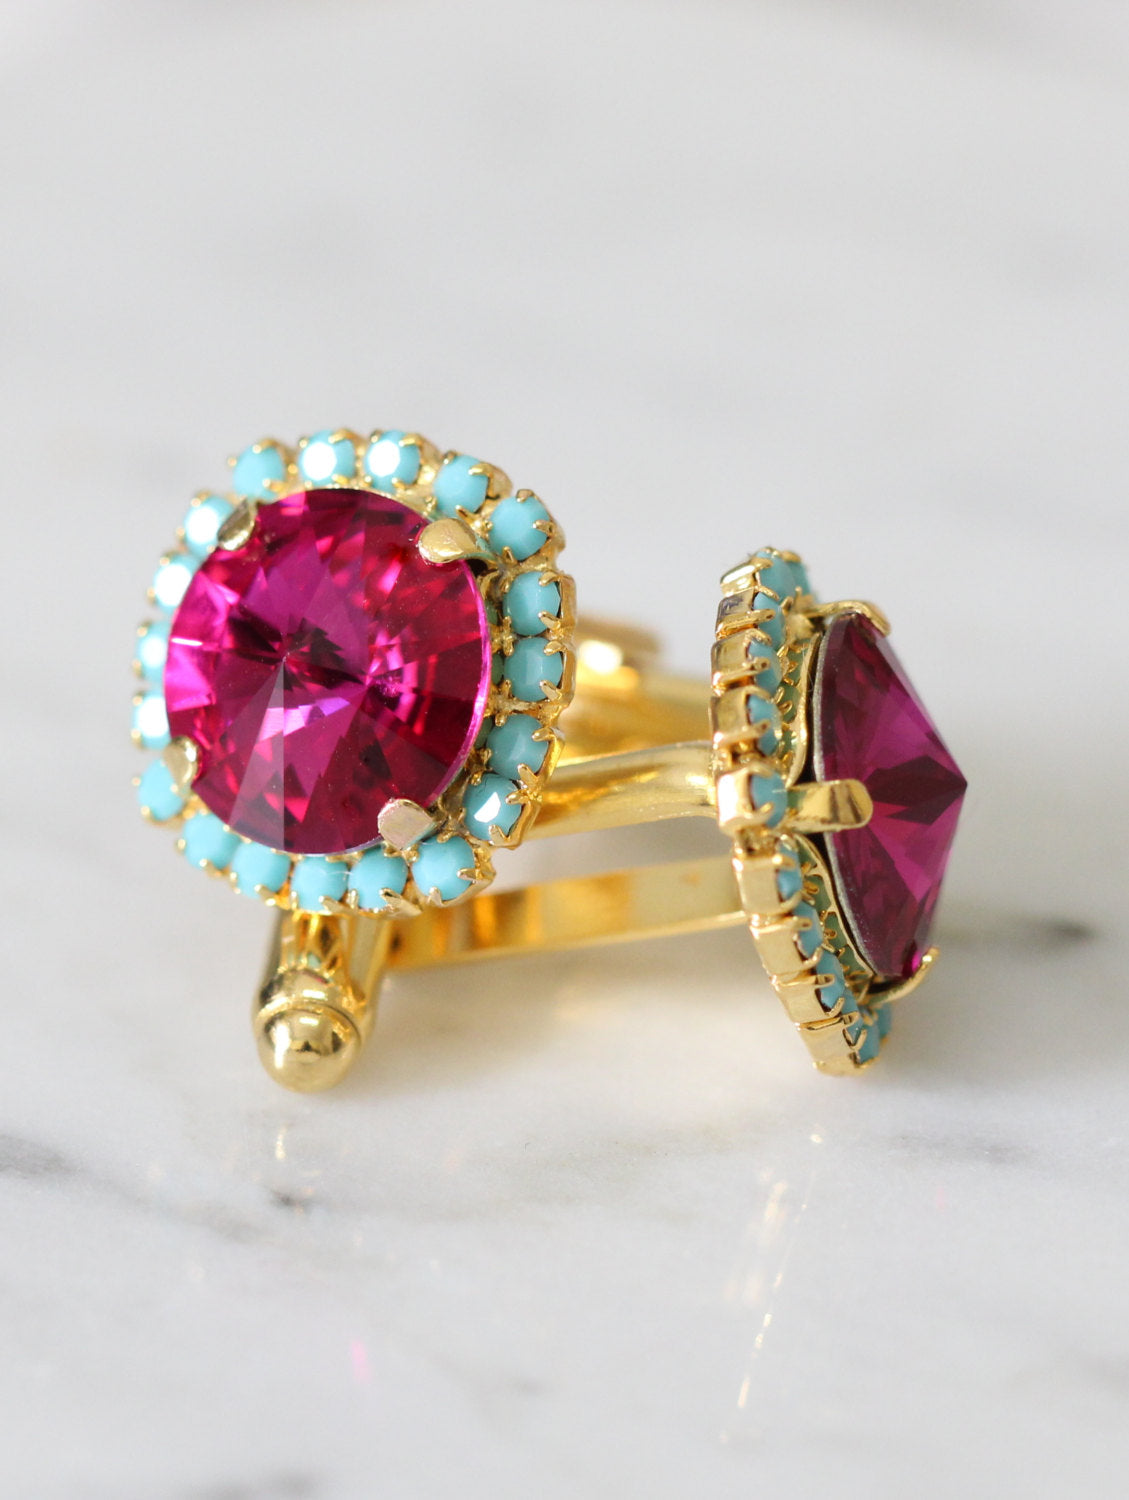 Kelly Fuchsia Turquoise Crystal Swarovski Cuff Links